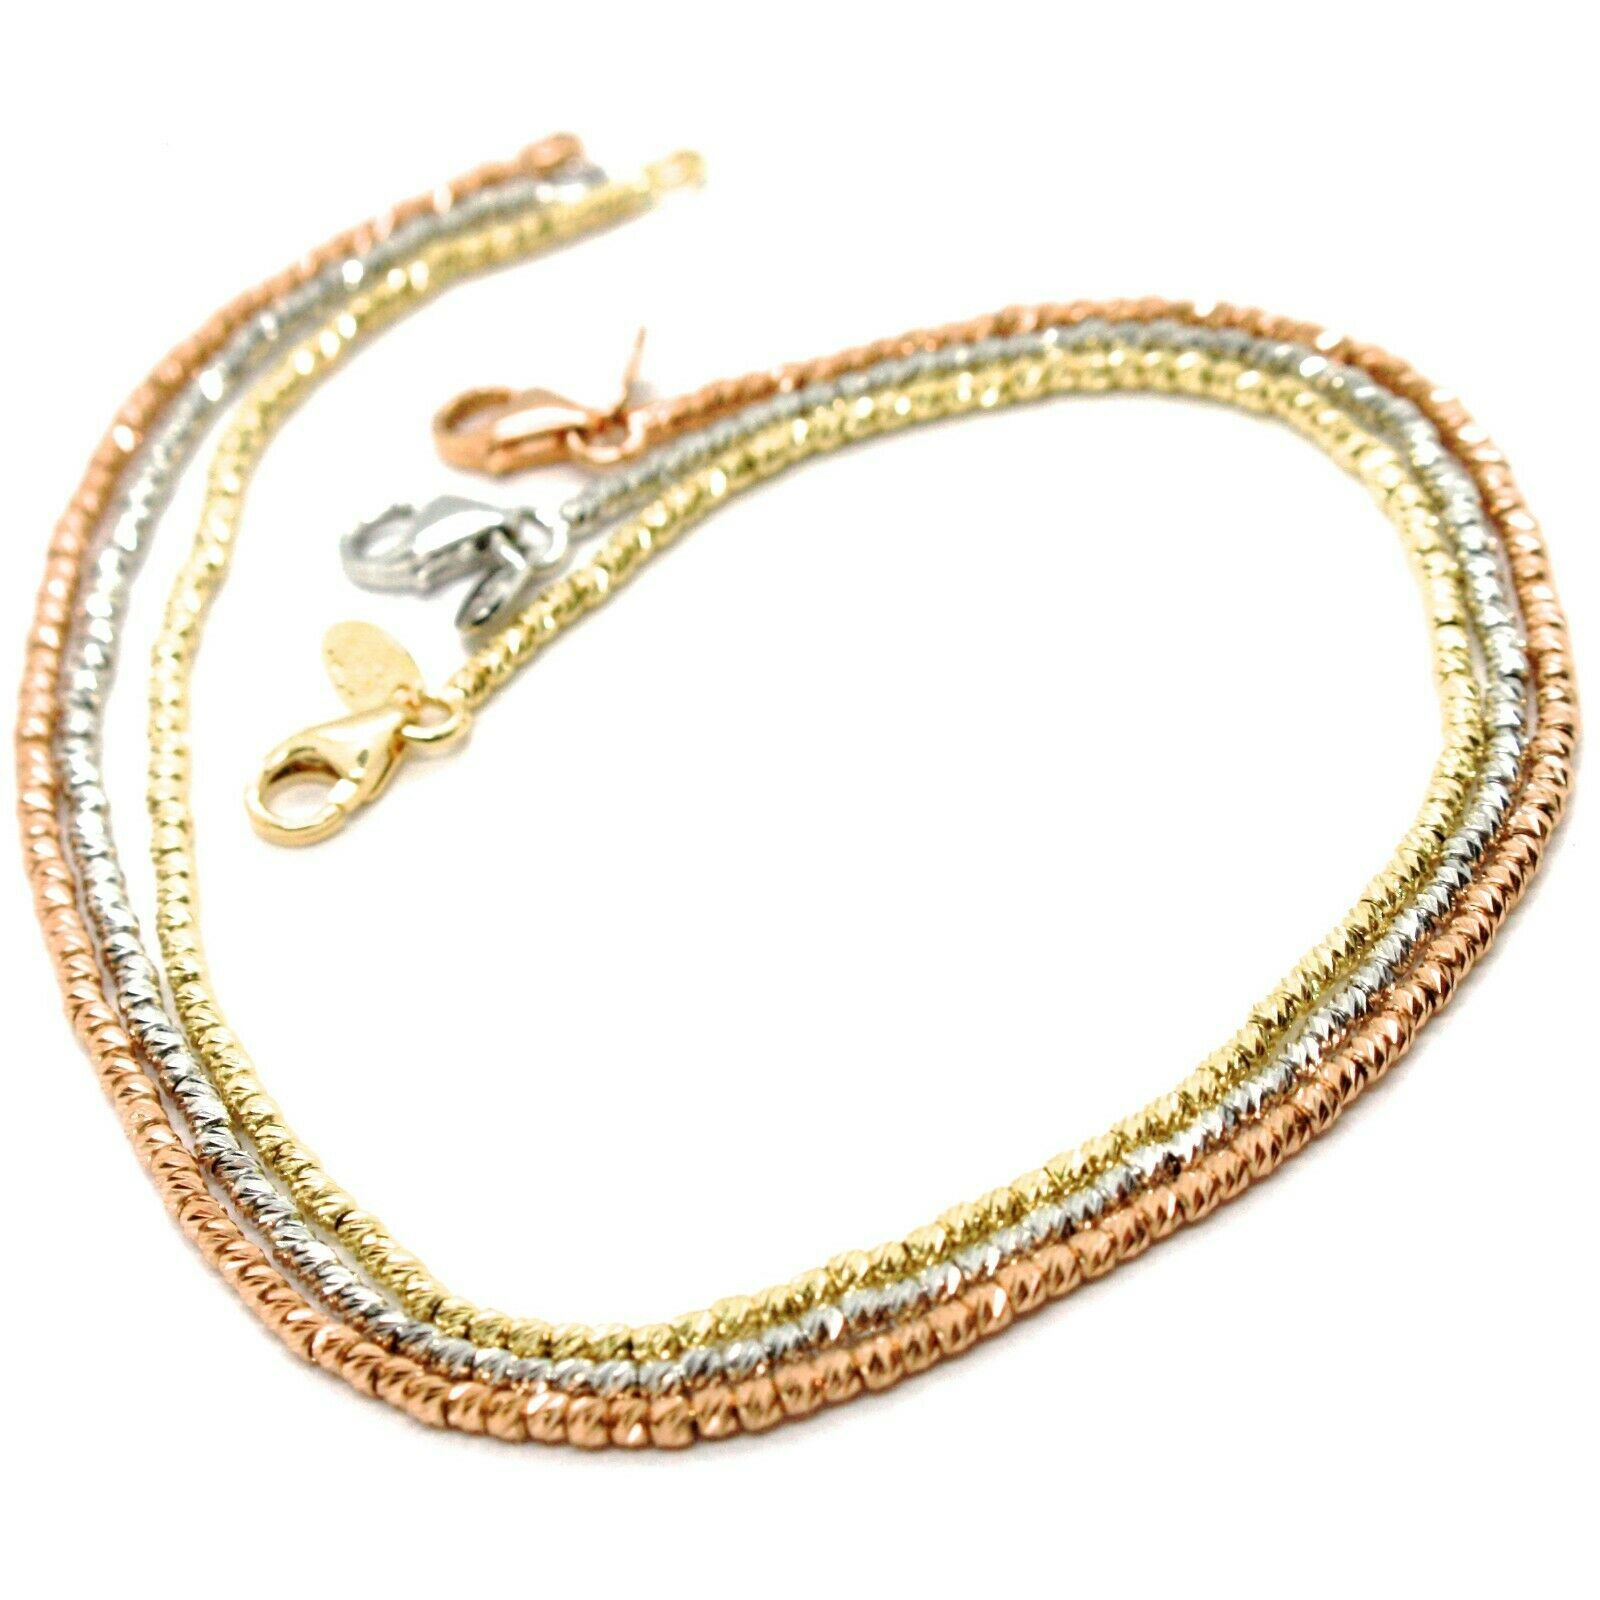 Gold Bracelet Pink Yellow or White 750 18K, 18.5 cm, Balls Faceted 1.5 MM